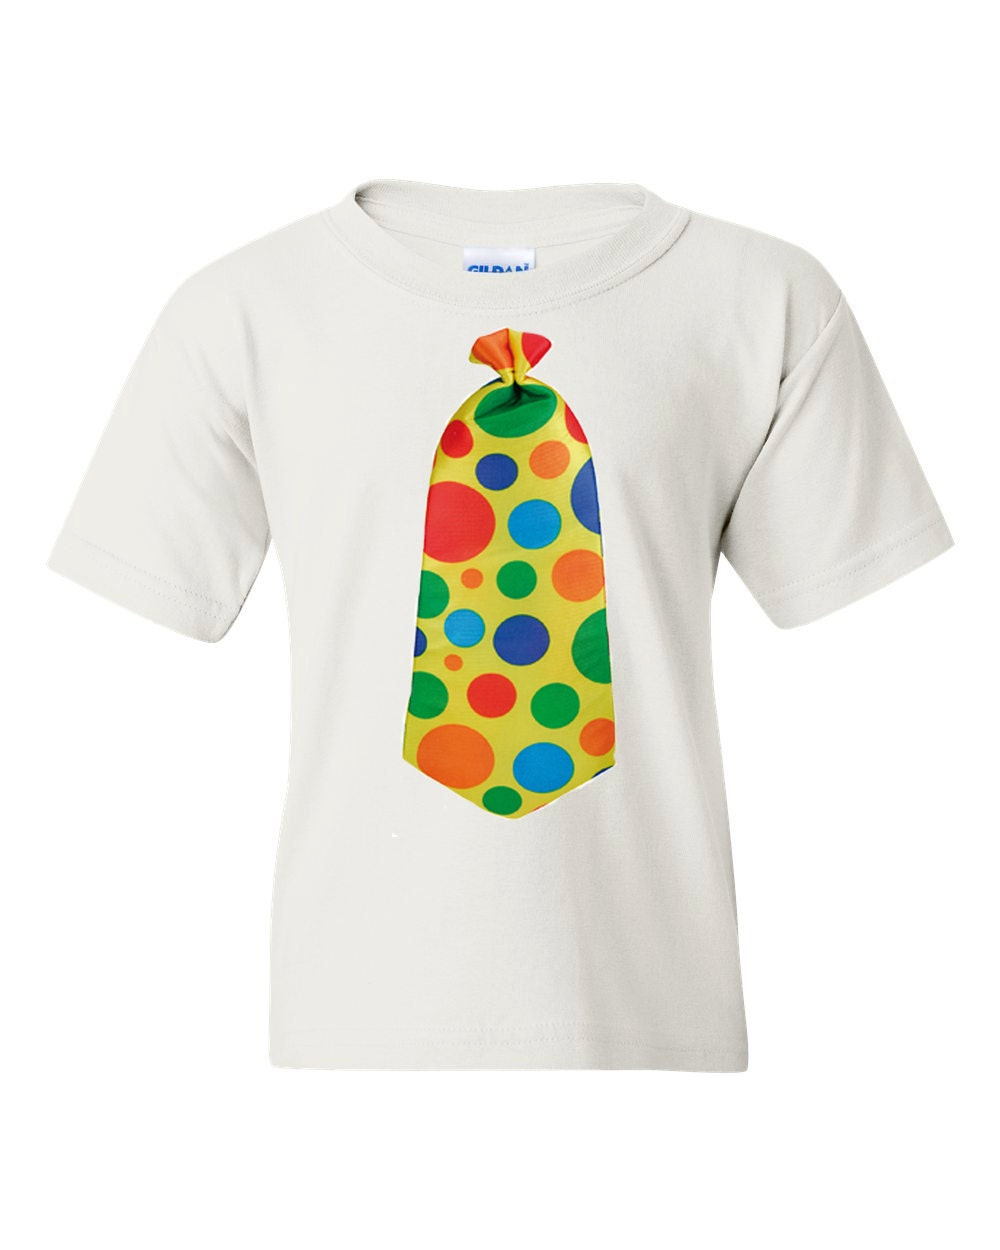 Design t shirt rollerblade - Funny Clown Tie Baby Toddler And Youth Kids T Shirt Clown Shirt